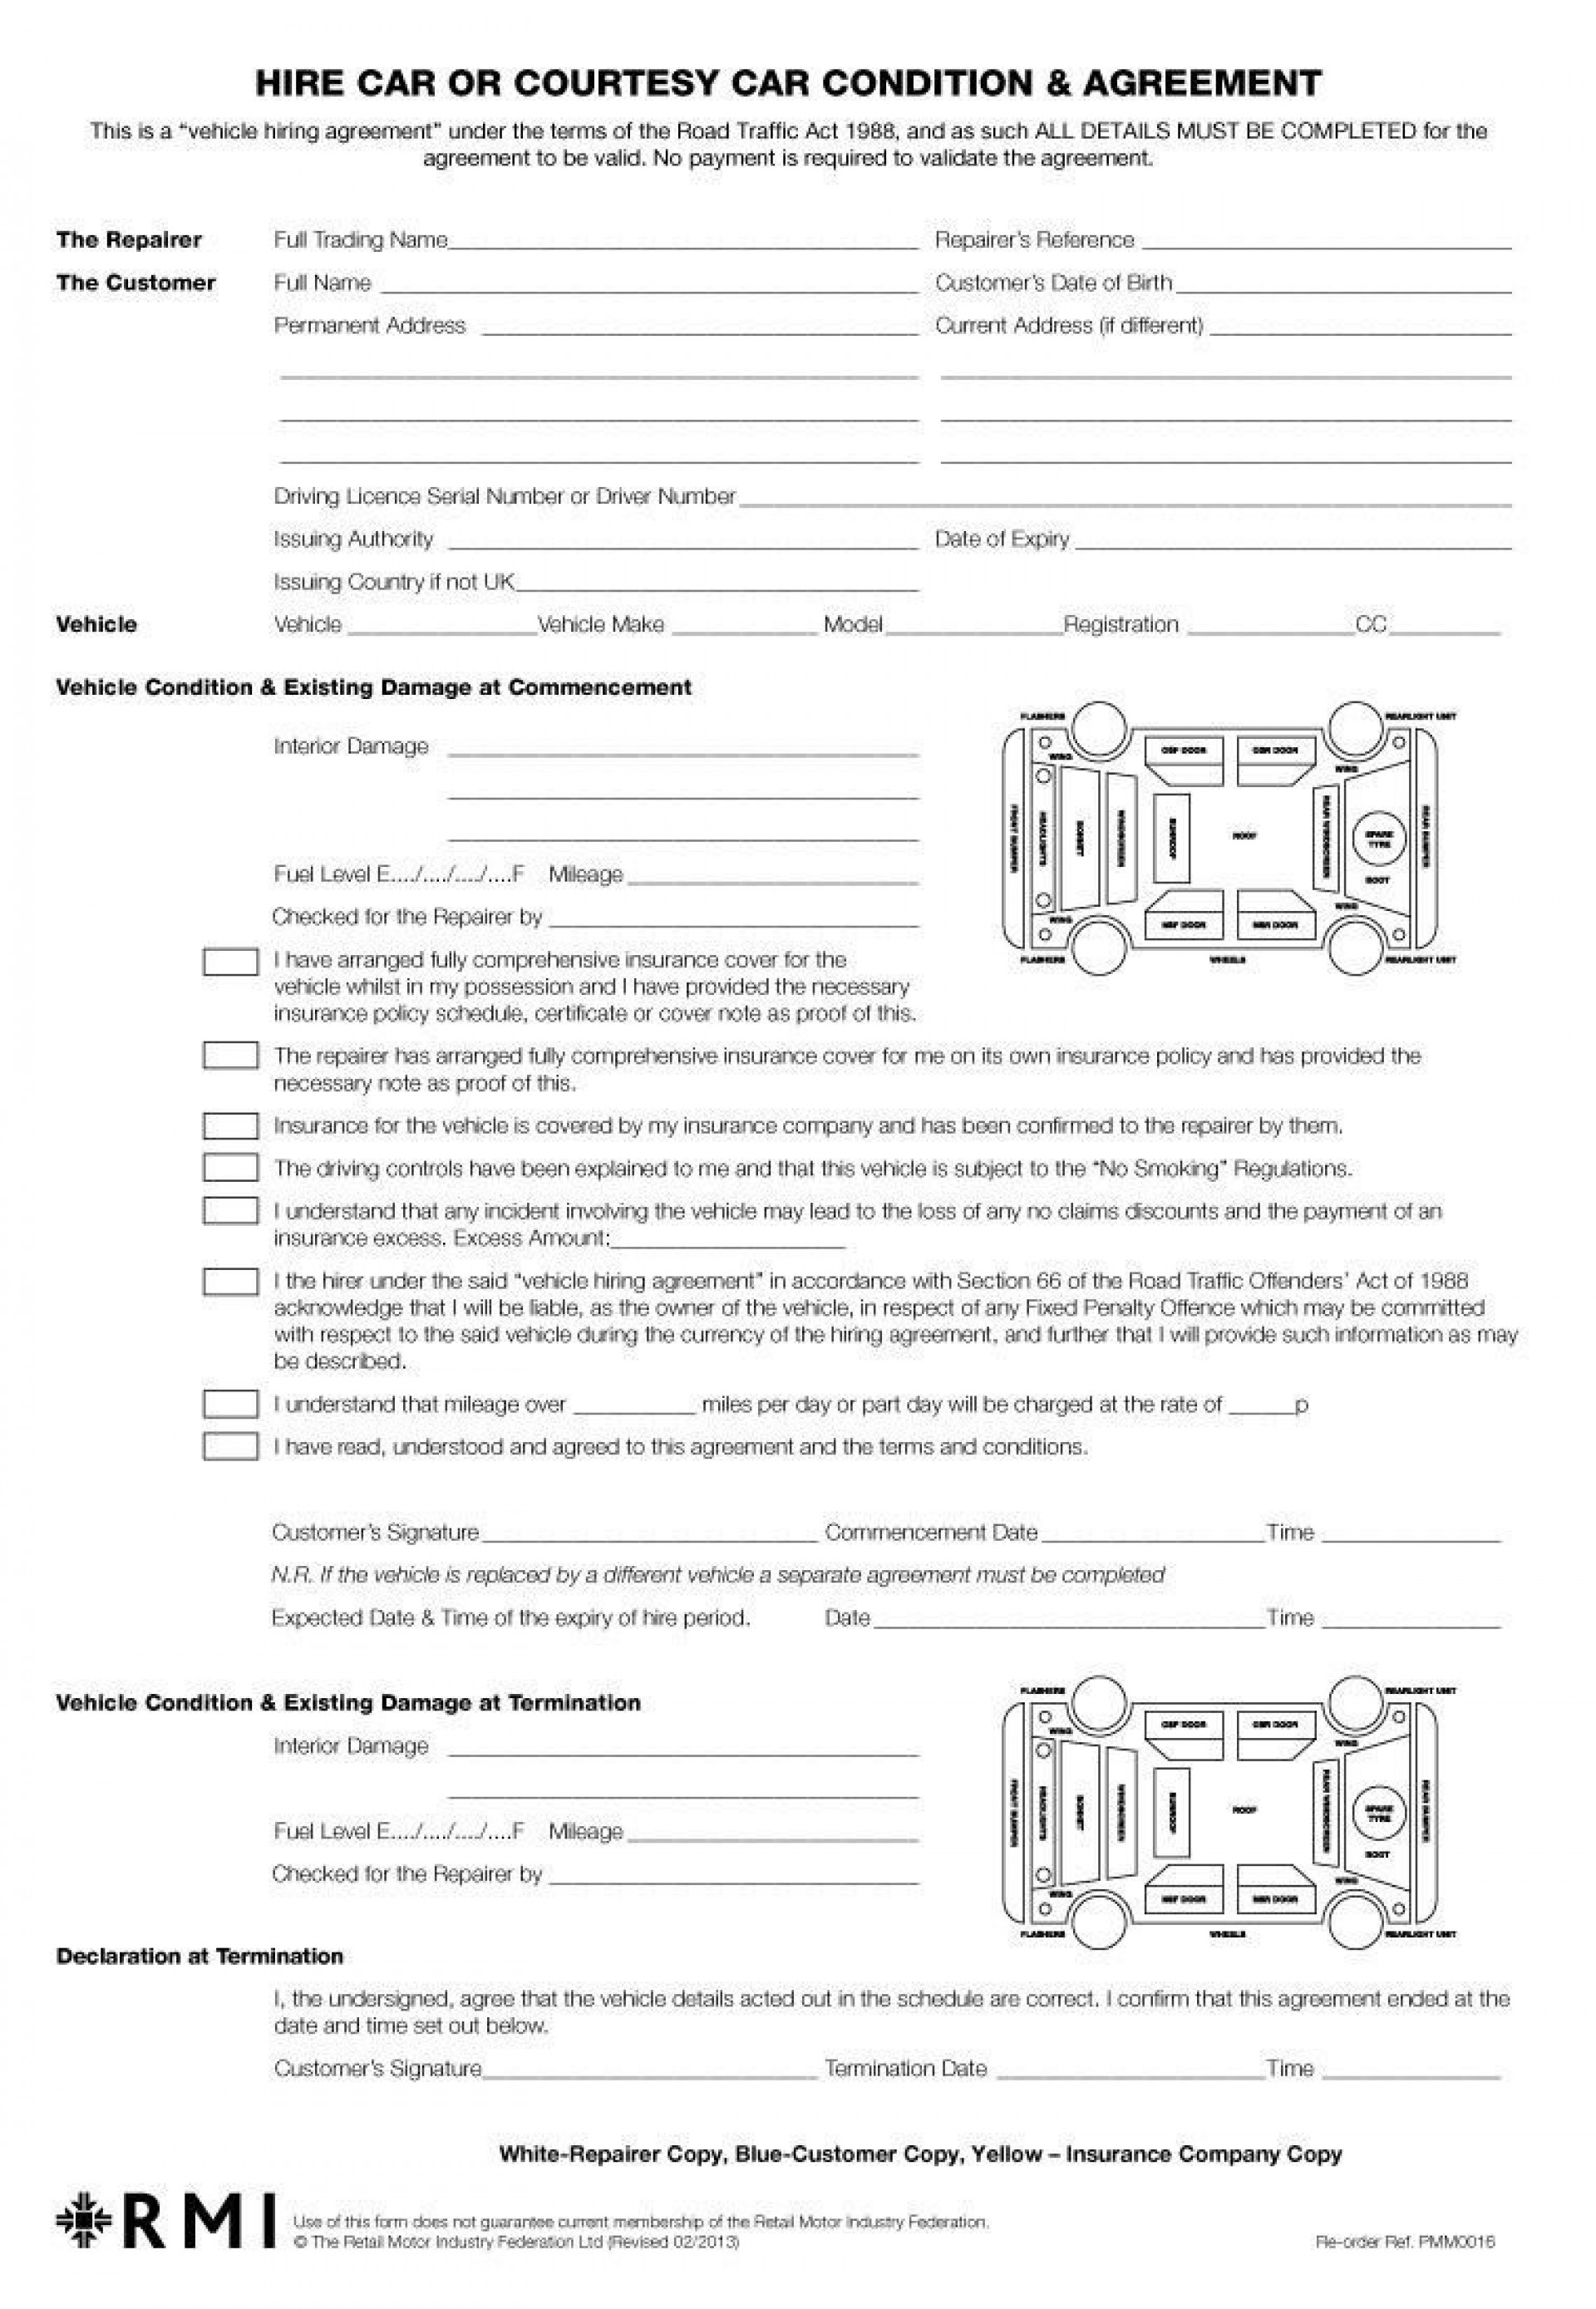 003 Breathtaking Template For Car Hire Agreement Picture 1920